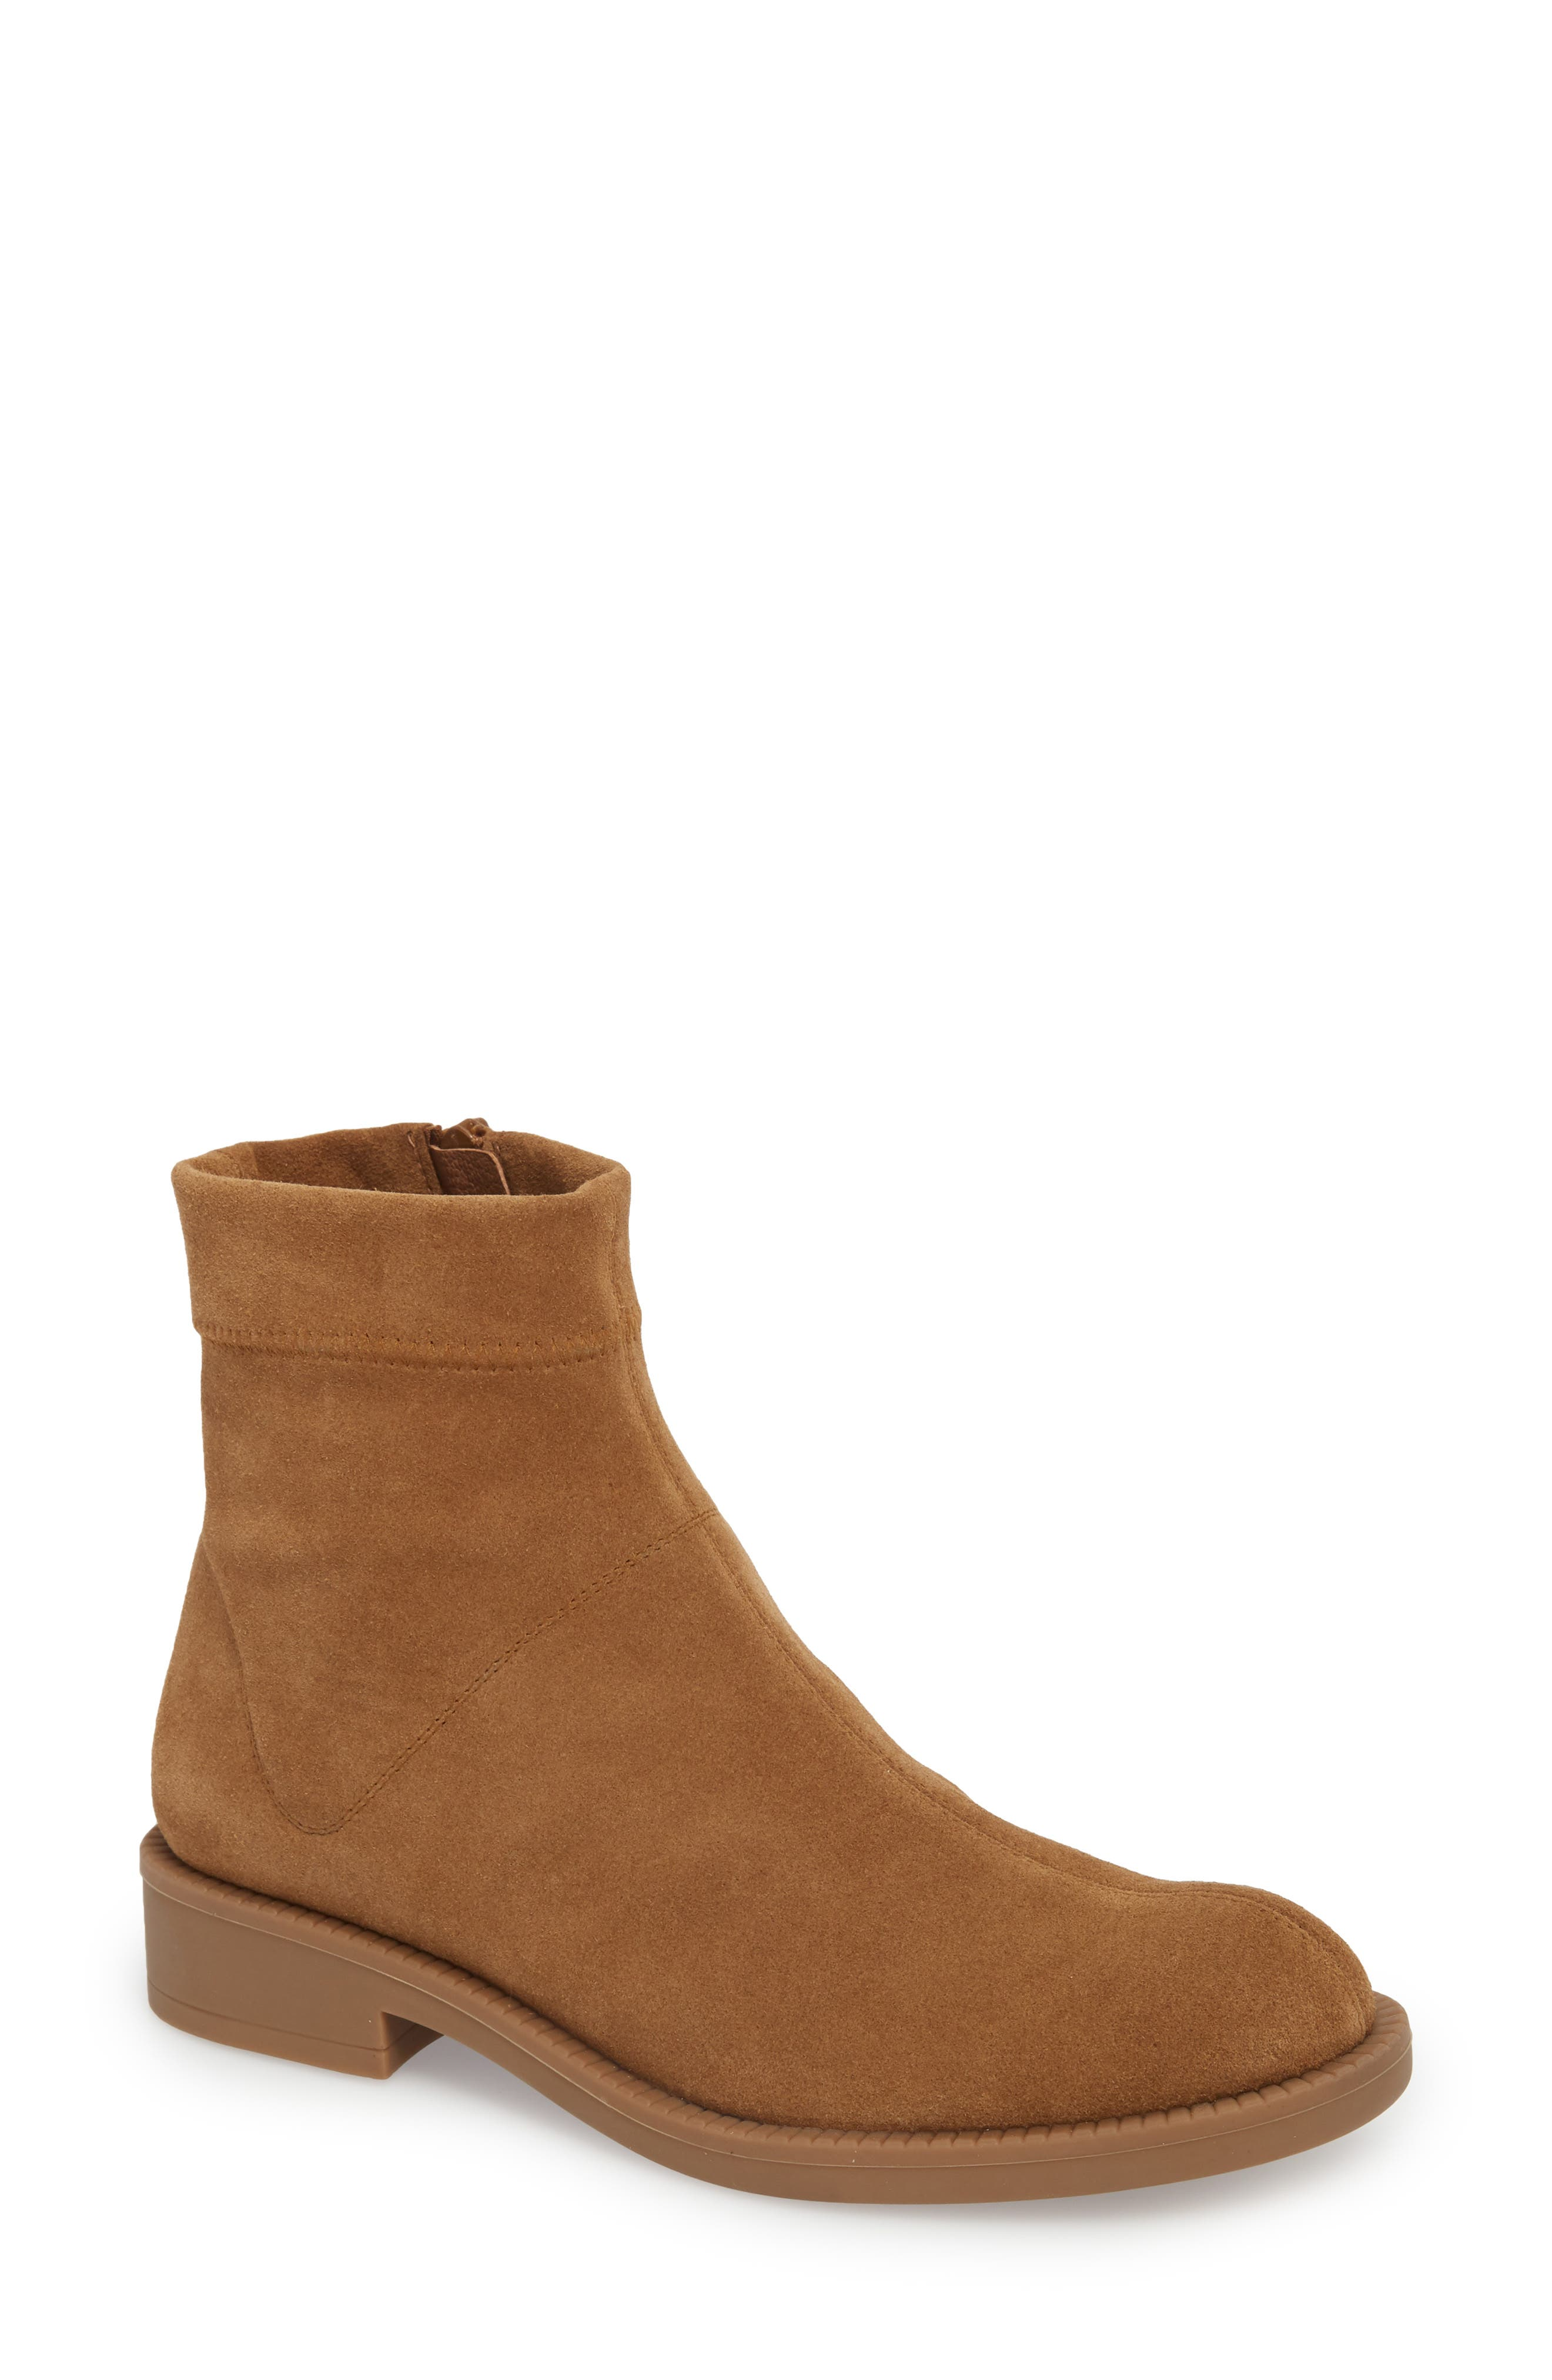 Kana Low Bootie,                         Main,                         color, TOBACCO STRETCH  SUEDE